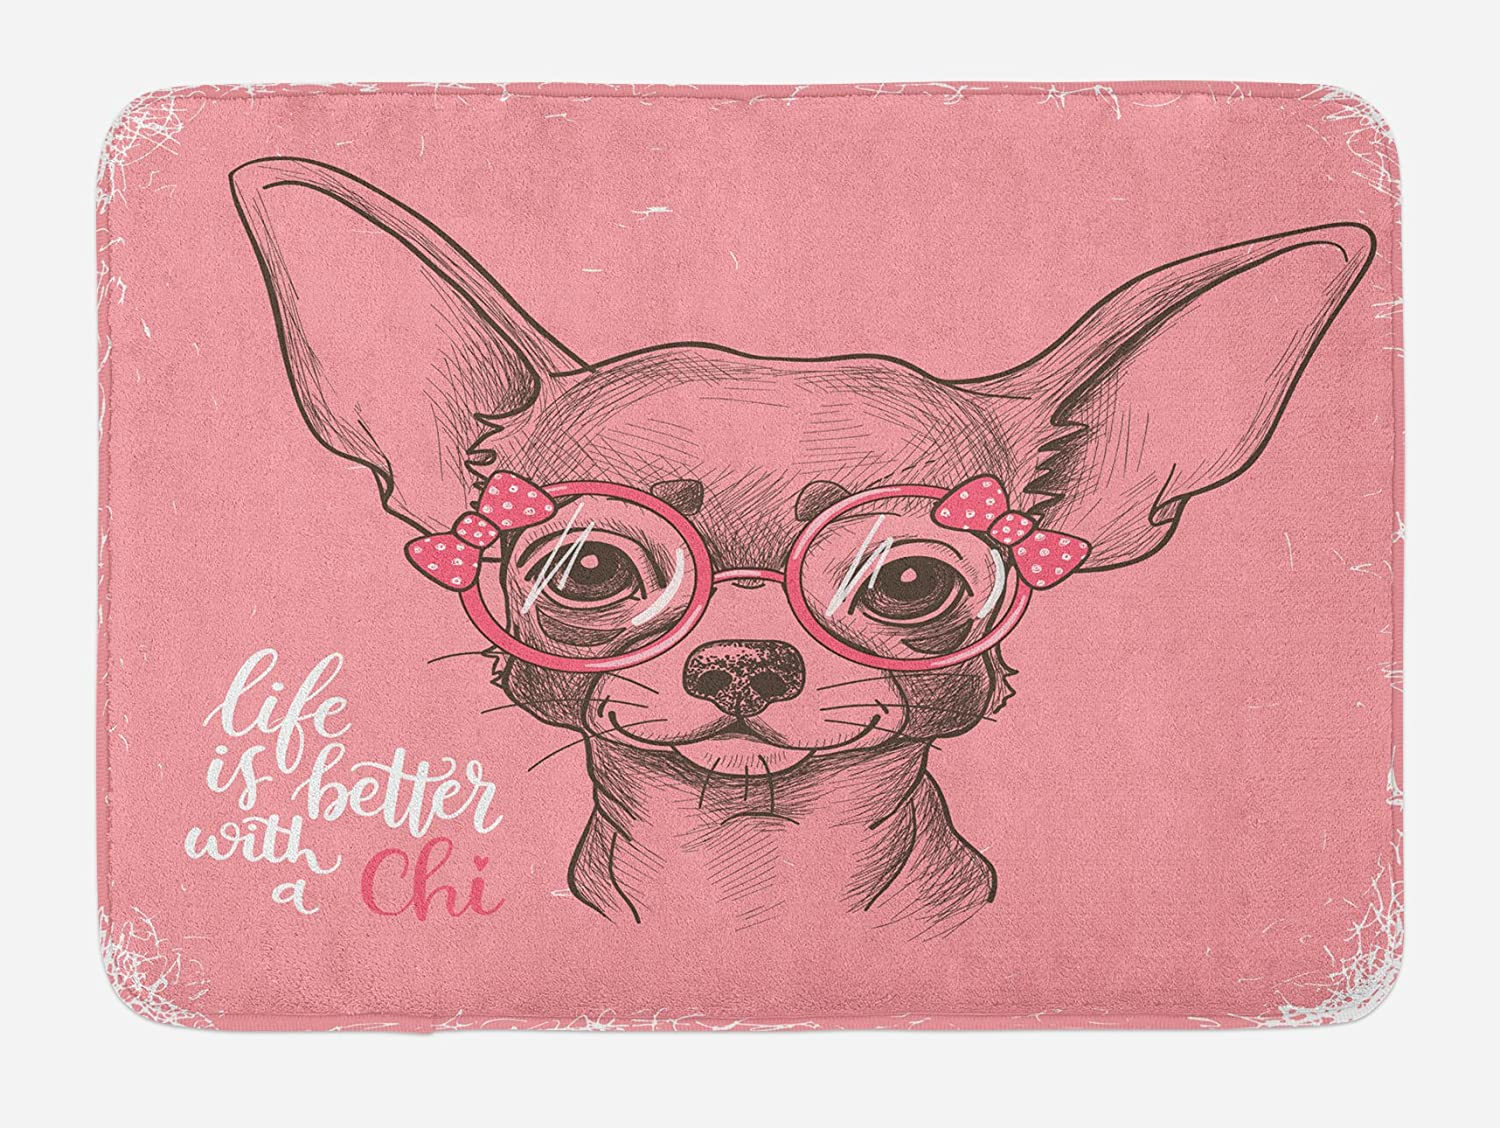 Ambesonne Dog Bath Mat, Girl Chihuahua Sketch Illustration with Words Fashion Glasses Ribbons Puppy, Plush Bathroom Decor Mat with Non Slip Backing, 29.5